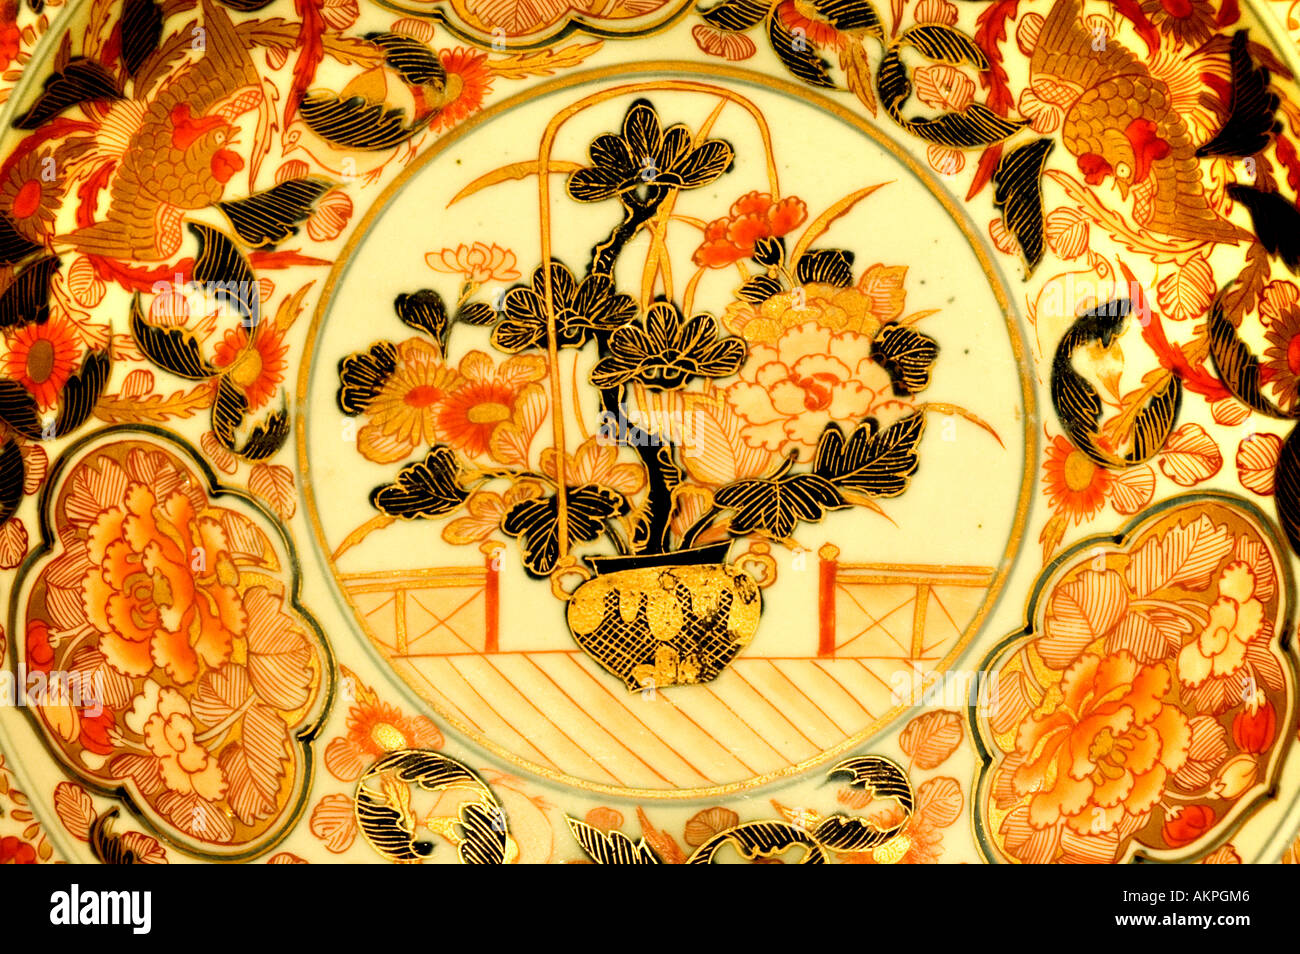 Fries Museum Leeuwarden Netherlands Friesland  Fryslan  porcelain paintings - Stock Image